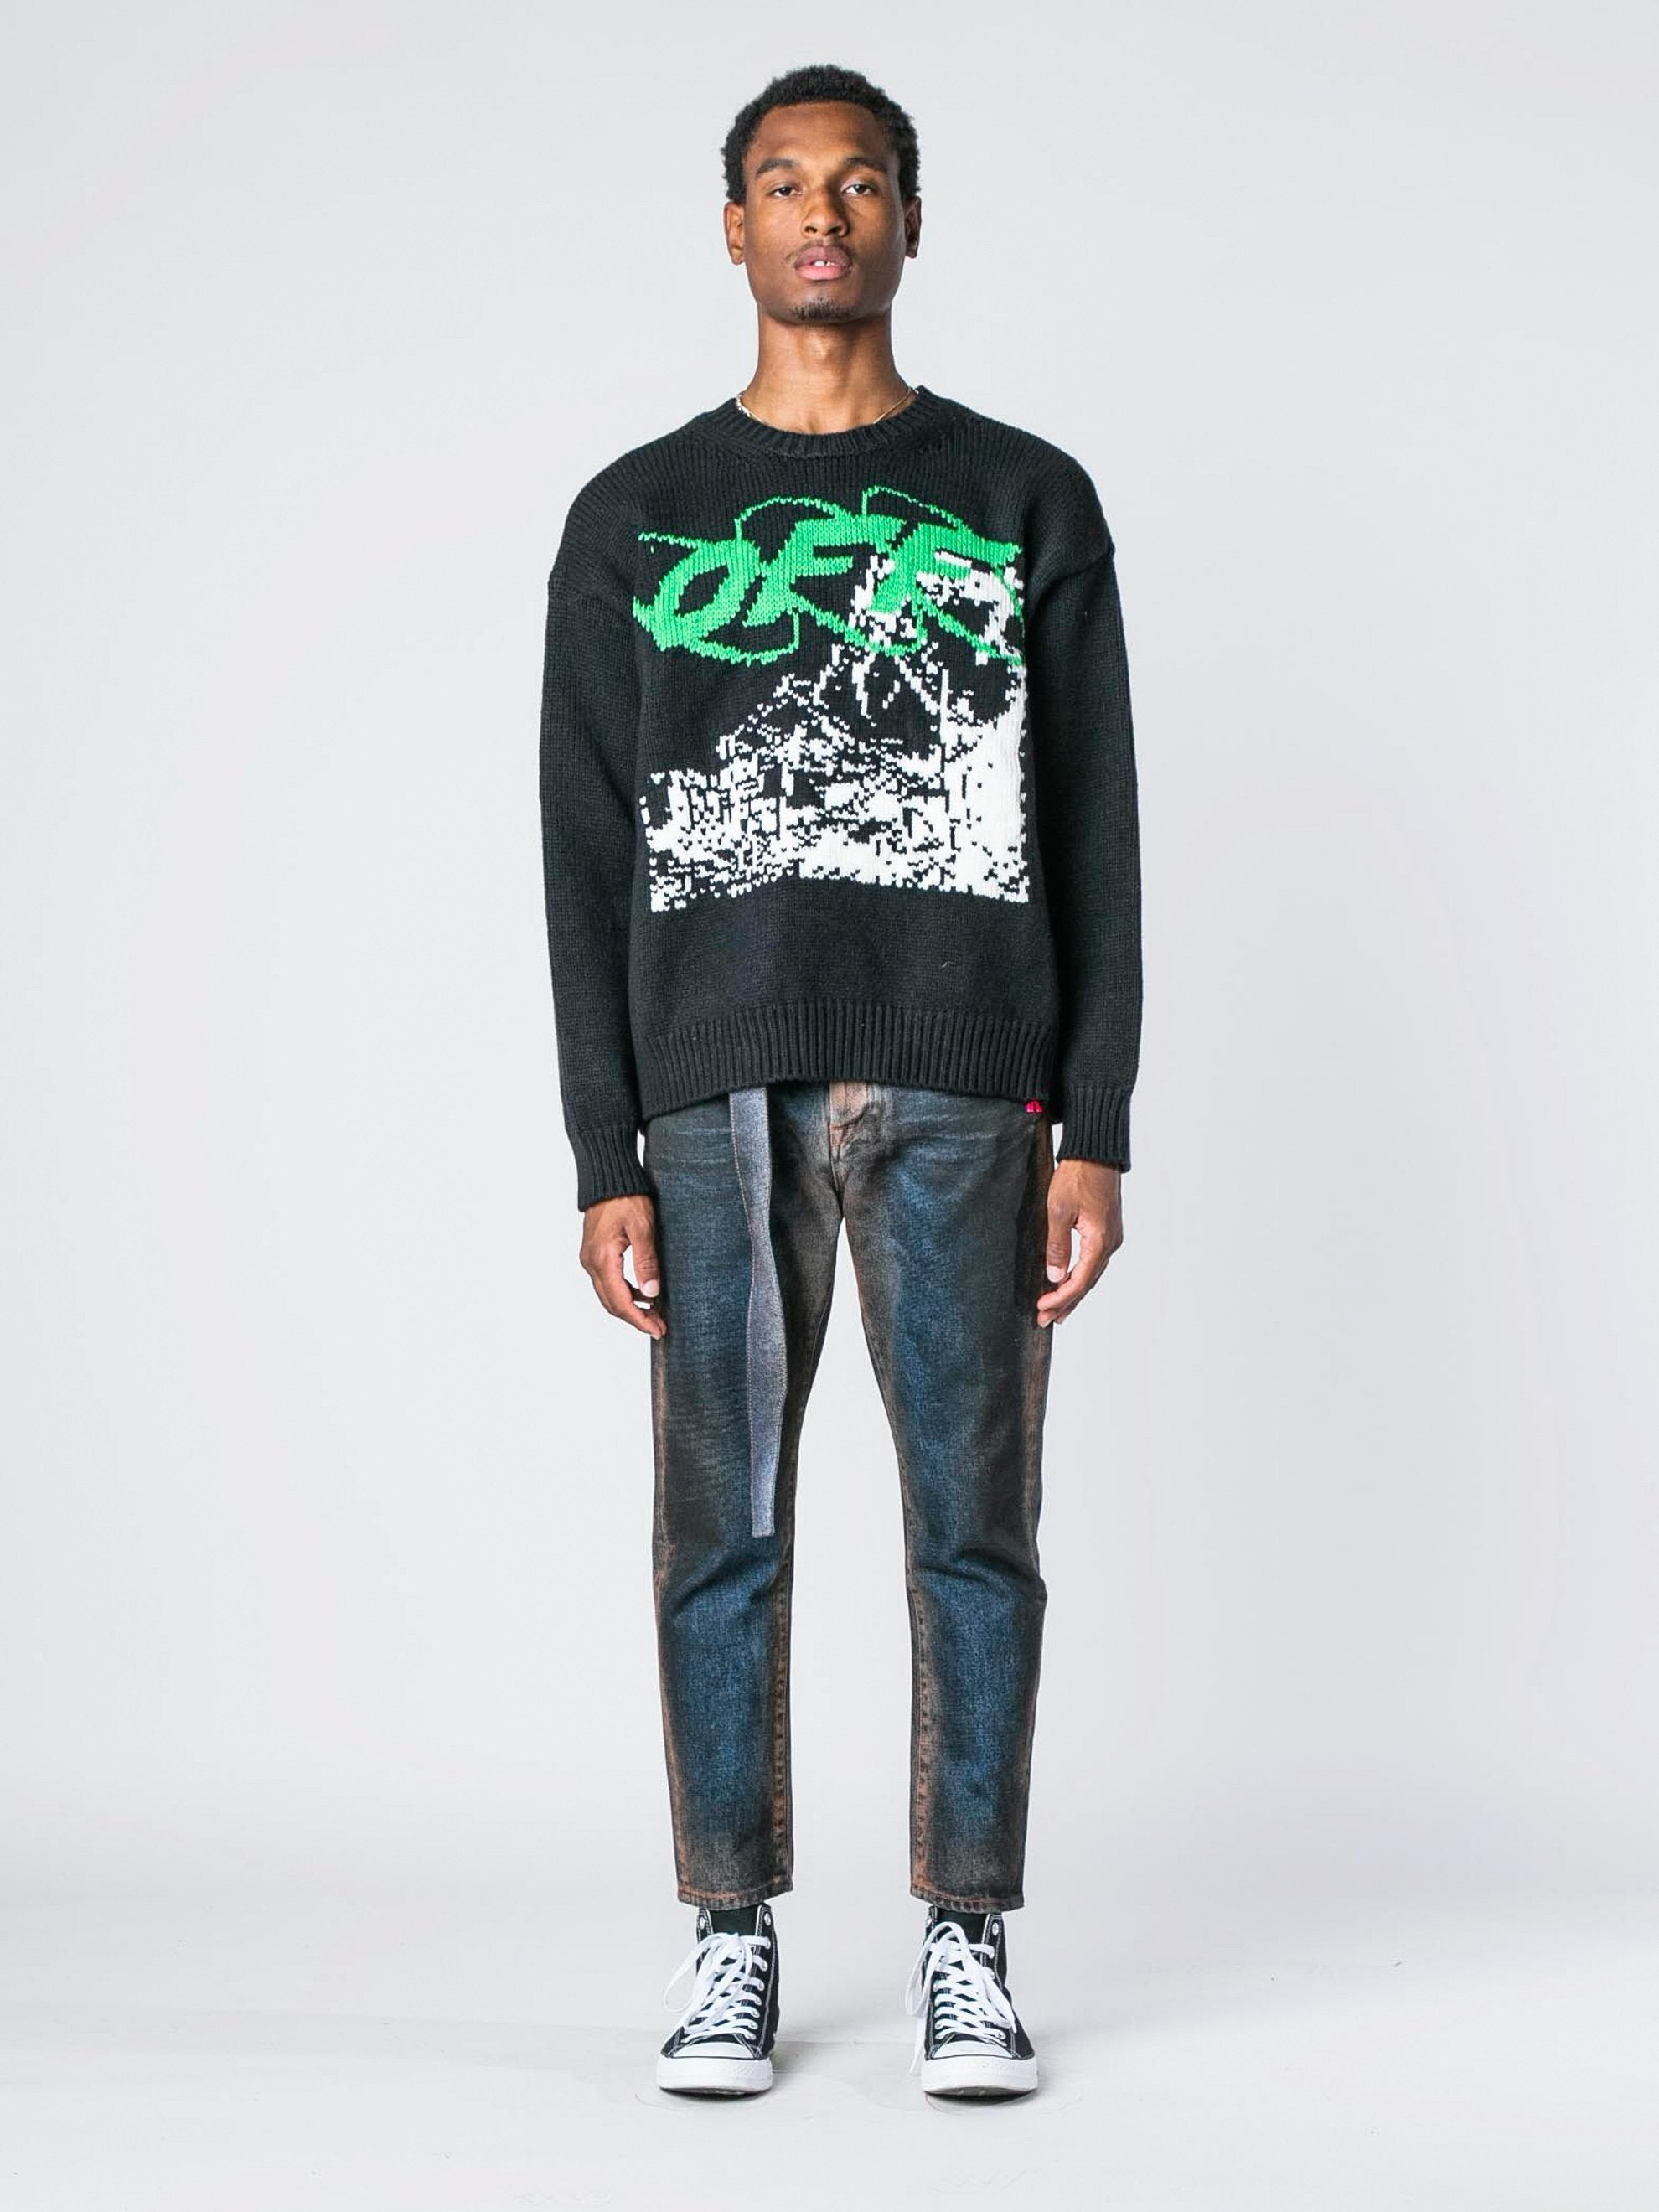 Black / White Ruined Factory Knit Crewneck 3